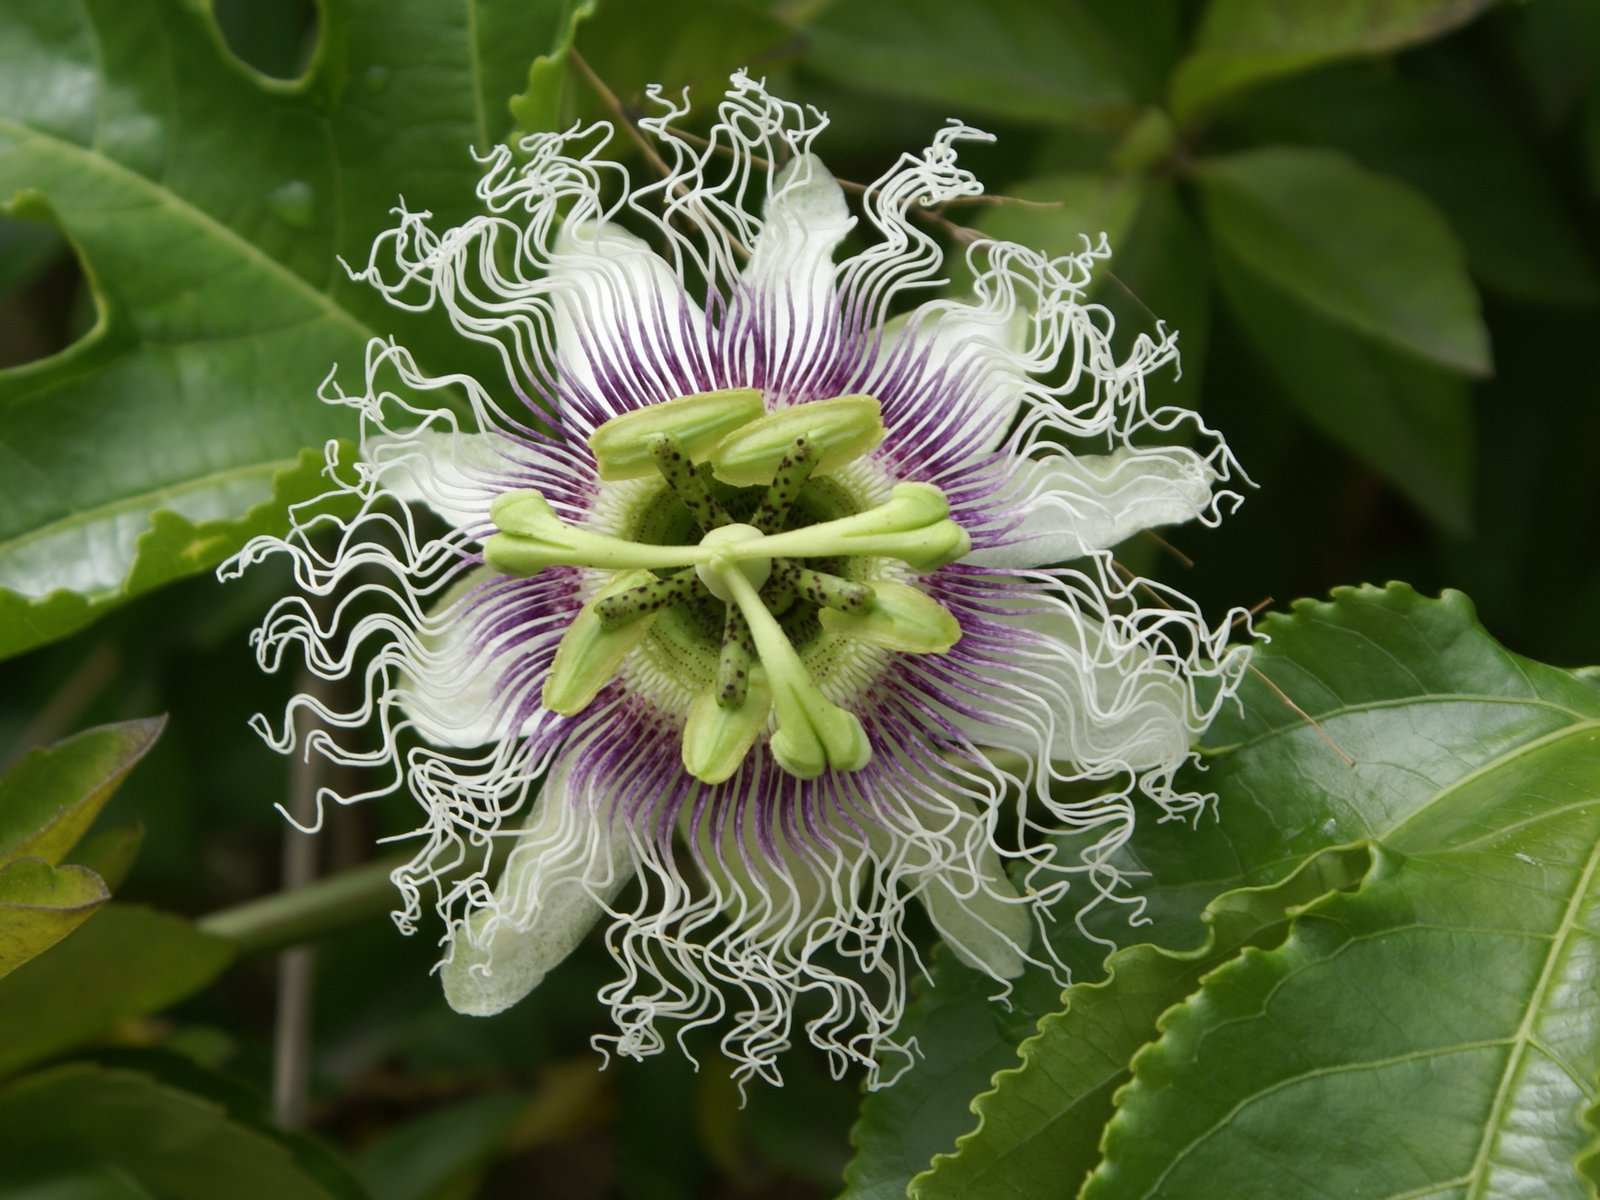 Granadilla fruit flowers